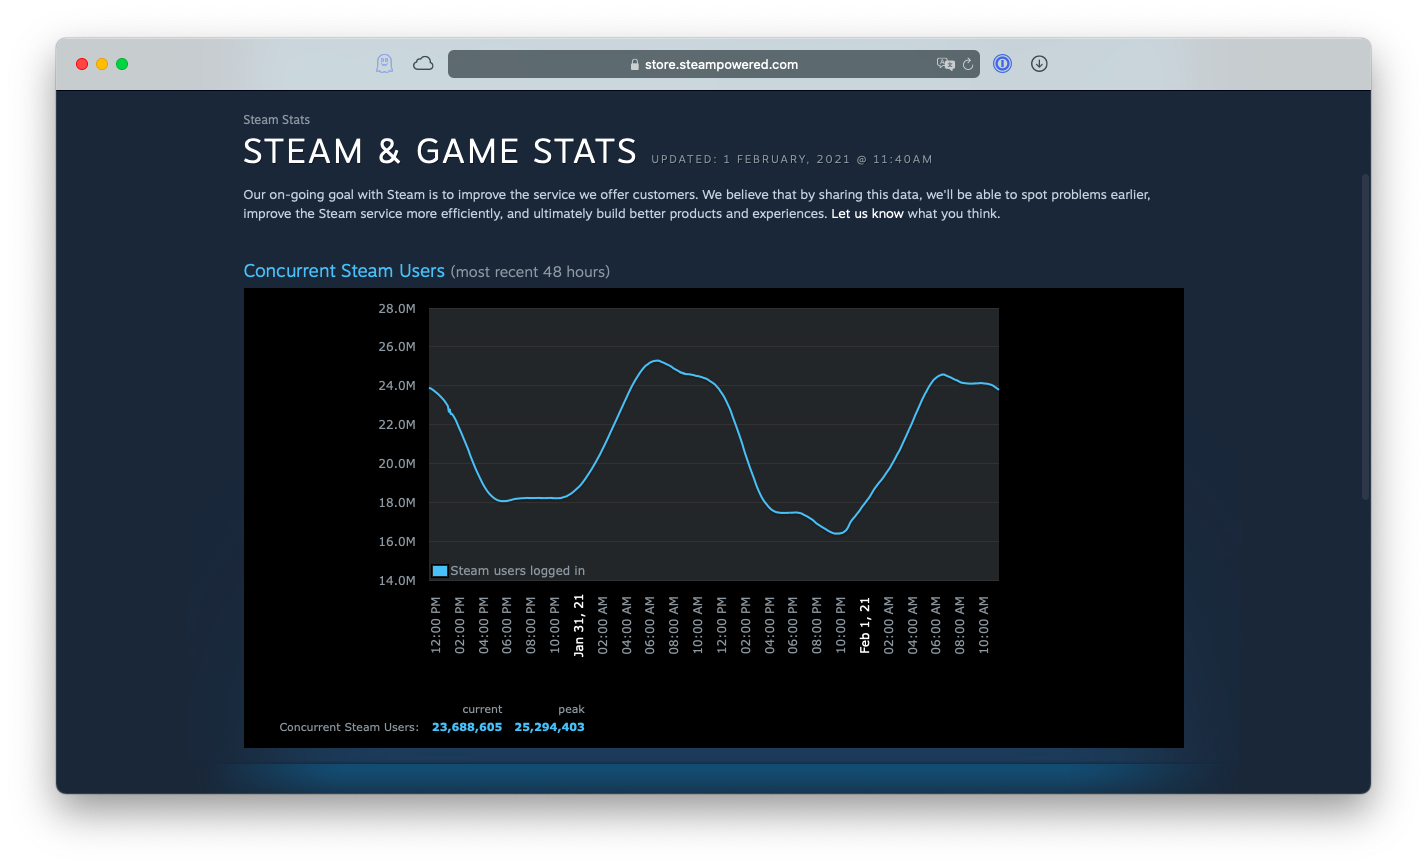 Steam & Game Stats